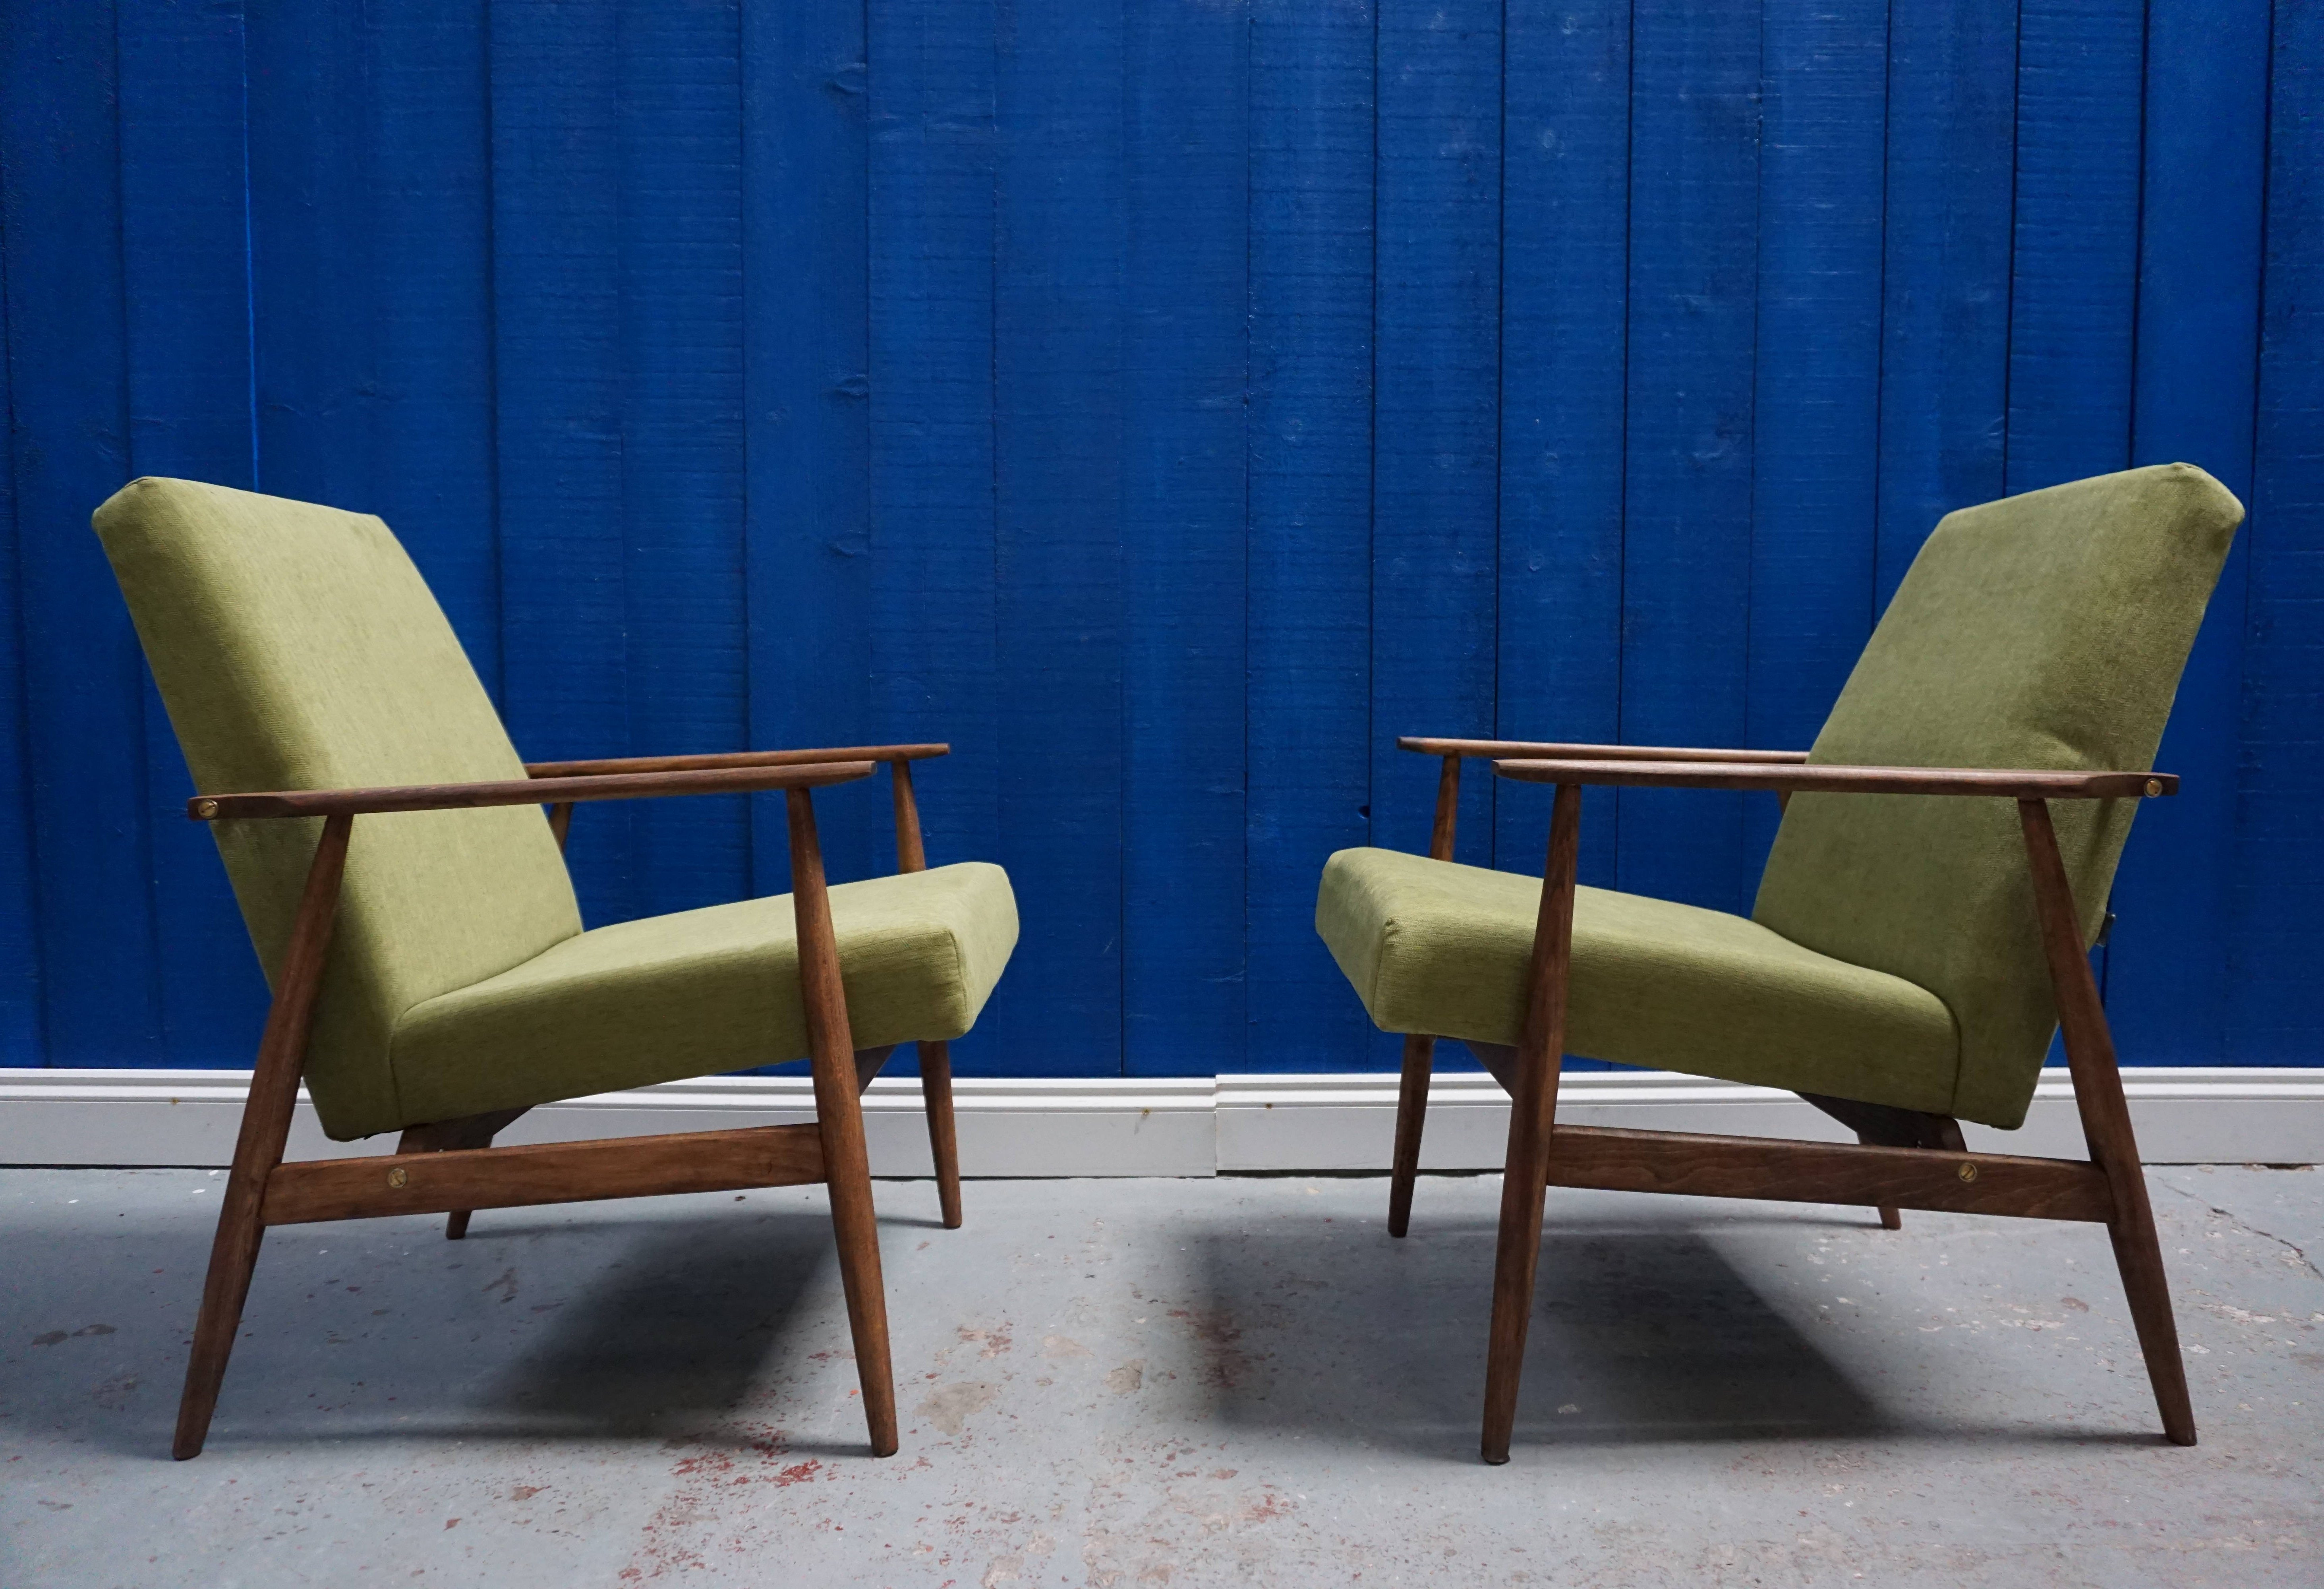 2 x mid century armchair in green by h lis 1970s